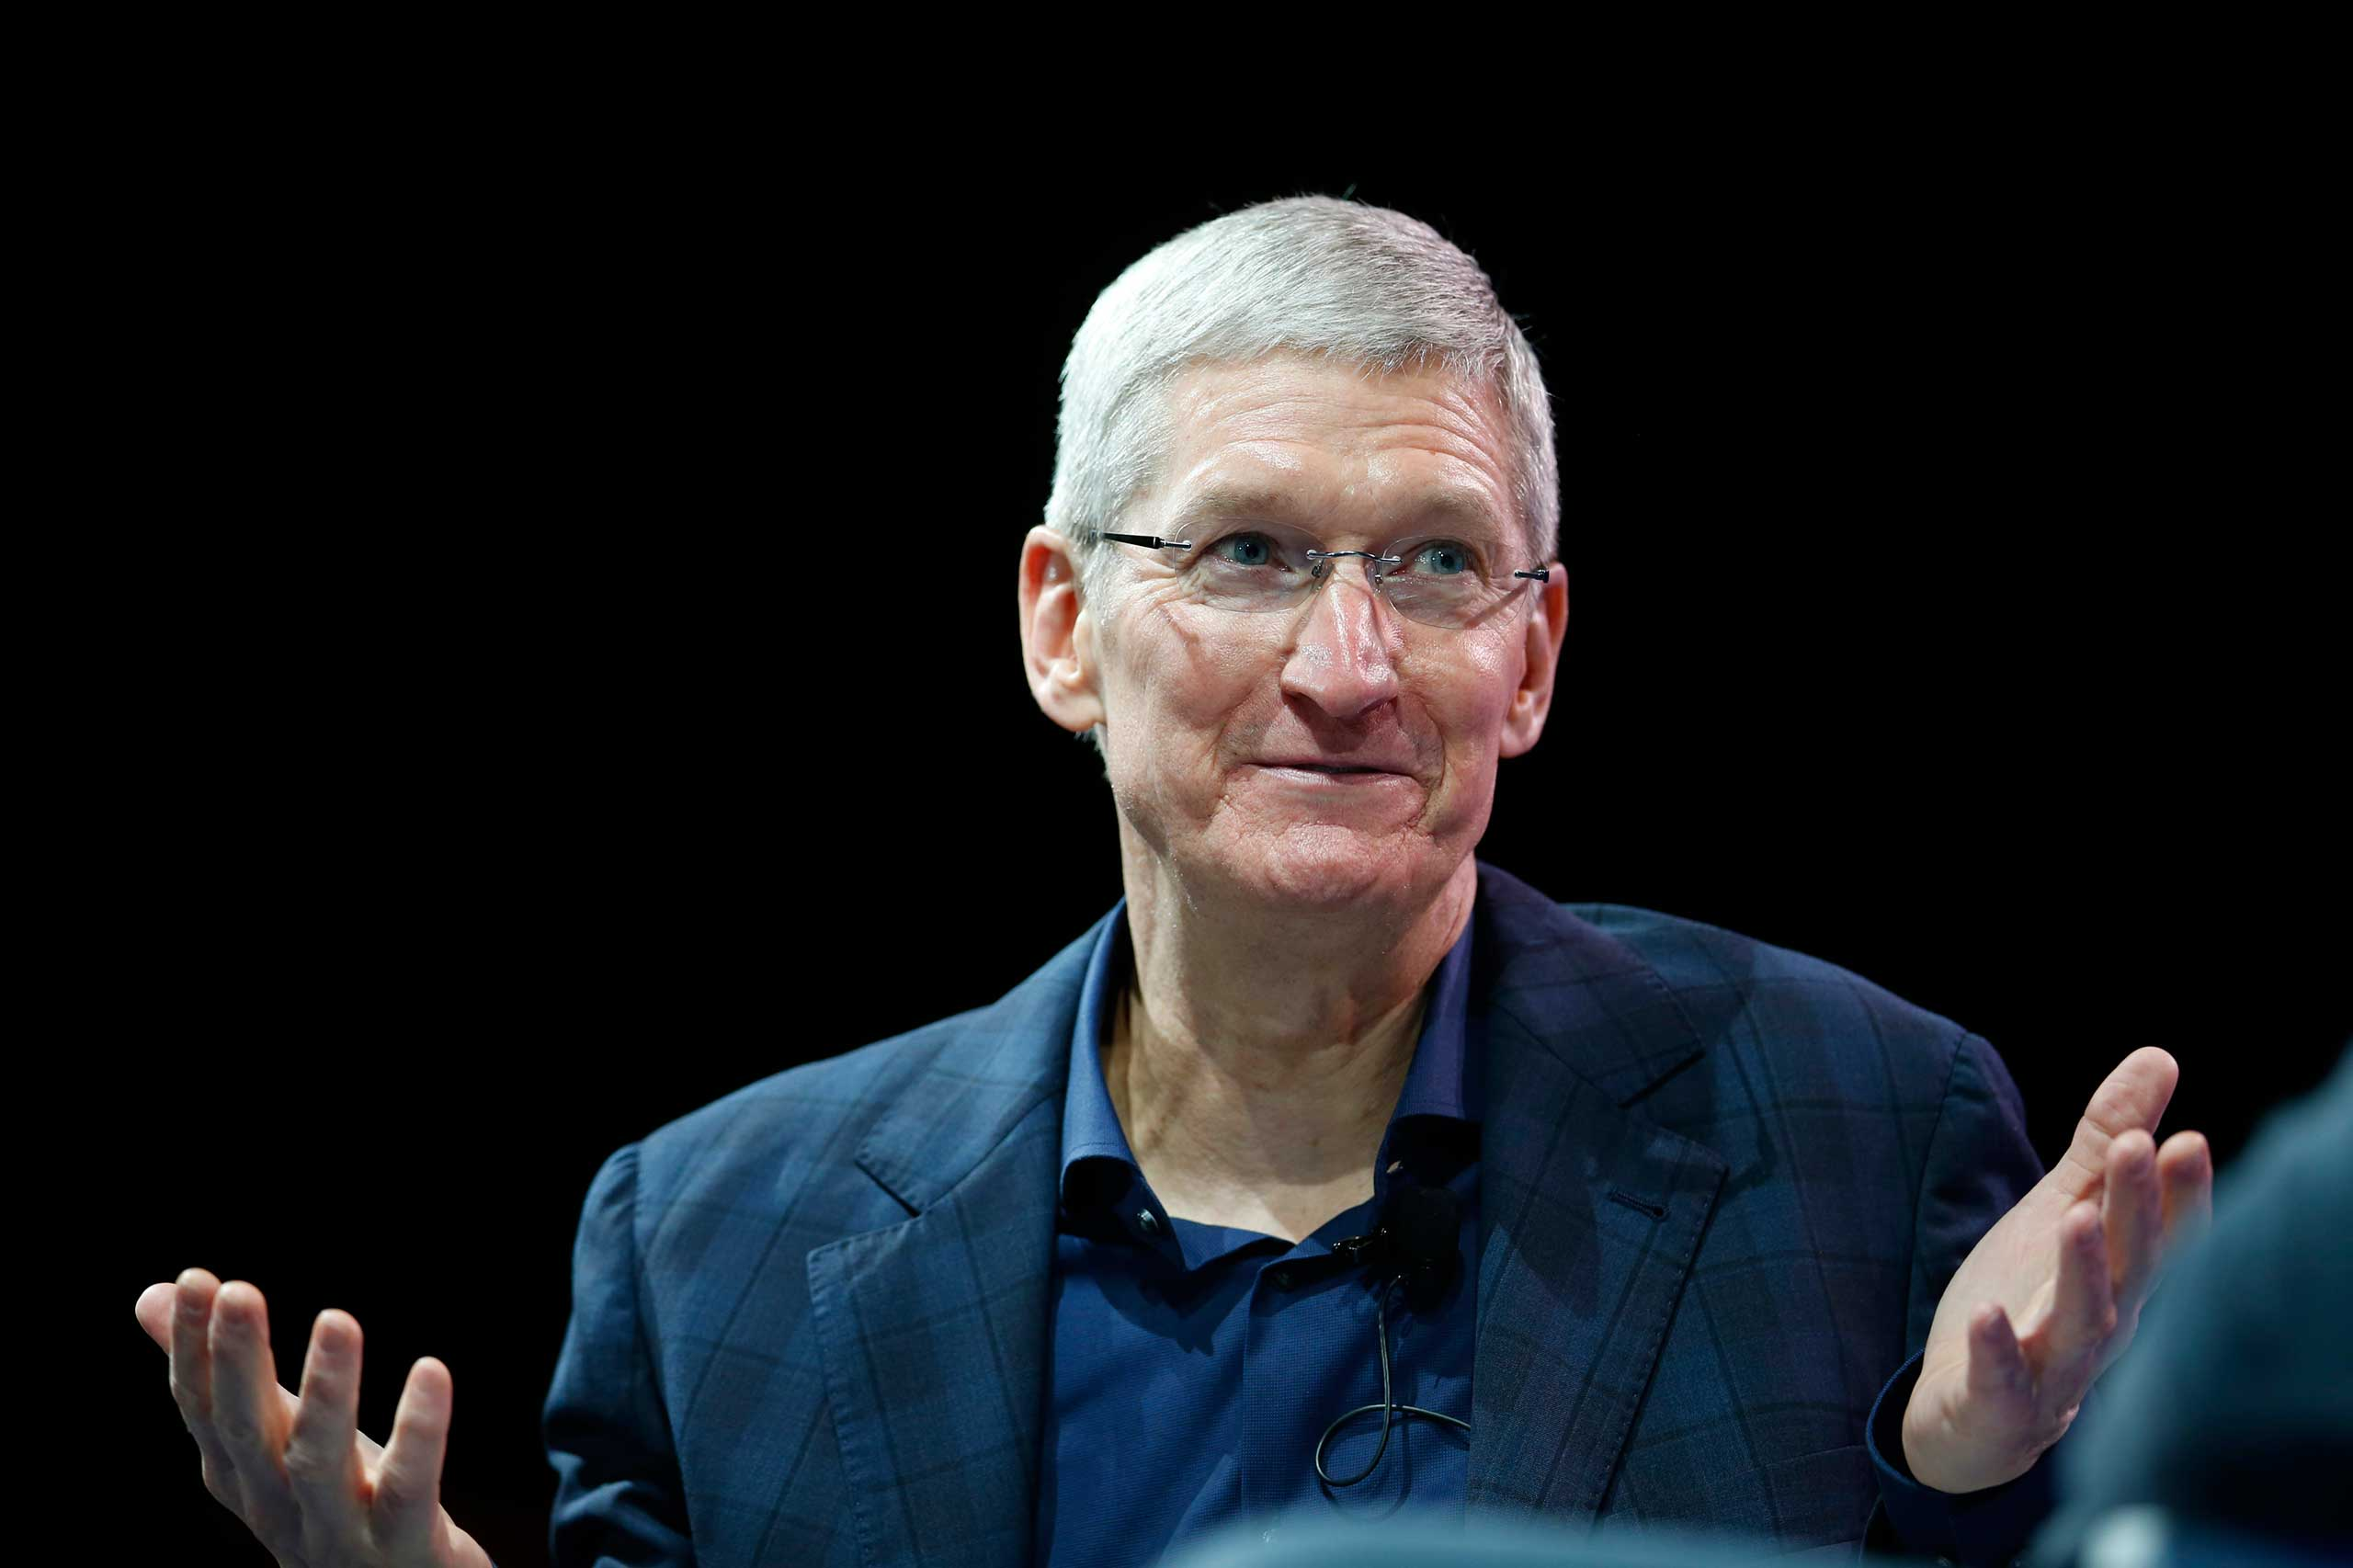 Apple CEO Tim Cook speaks at the WSJD Live conference in Laguna Beach, Calif., Oct. 27, 2014.